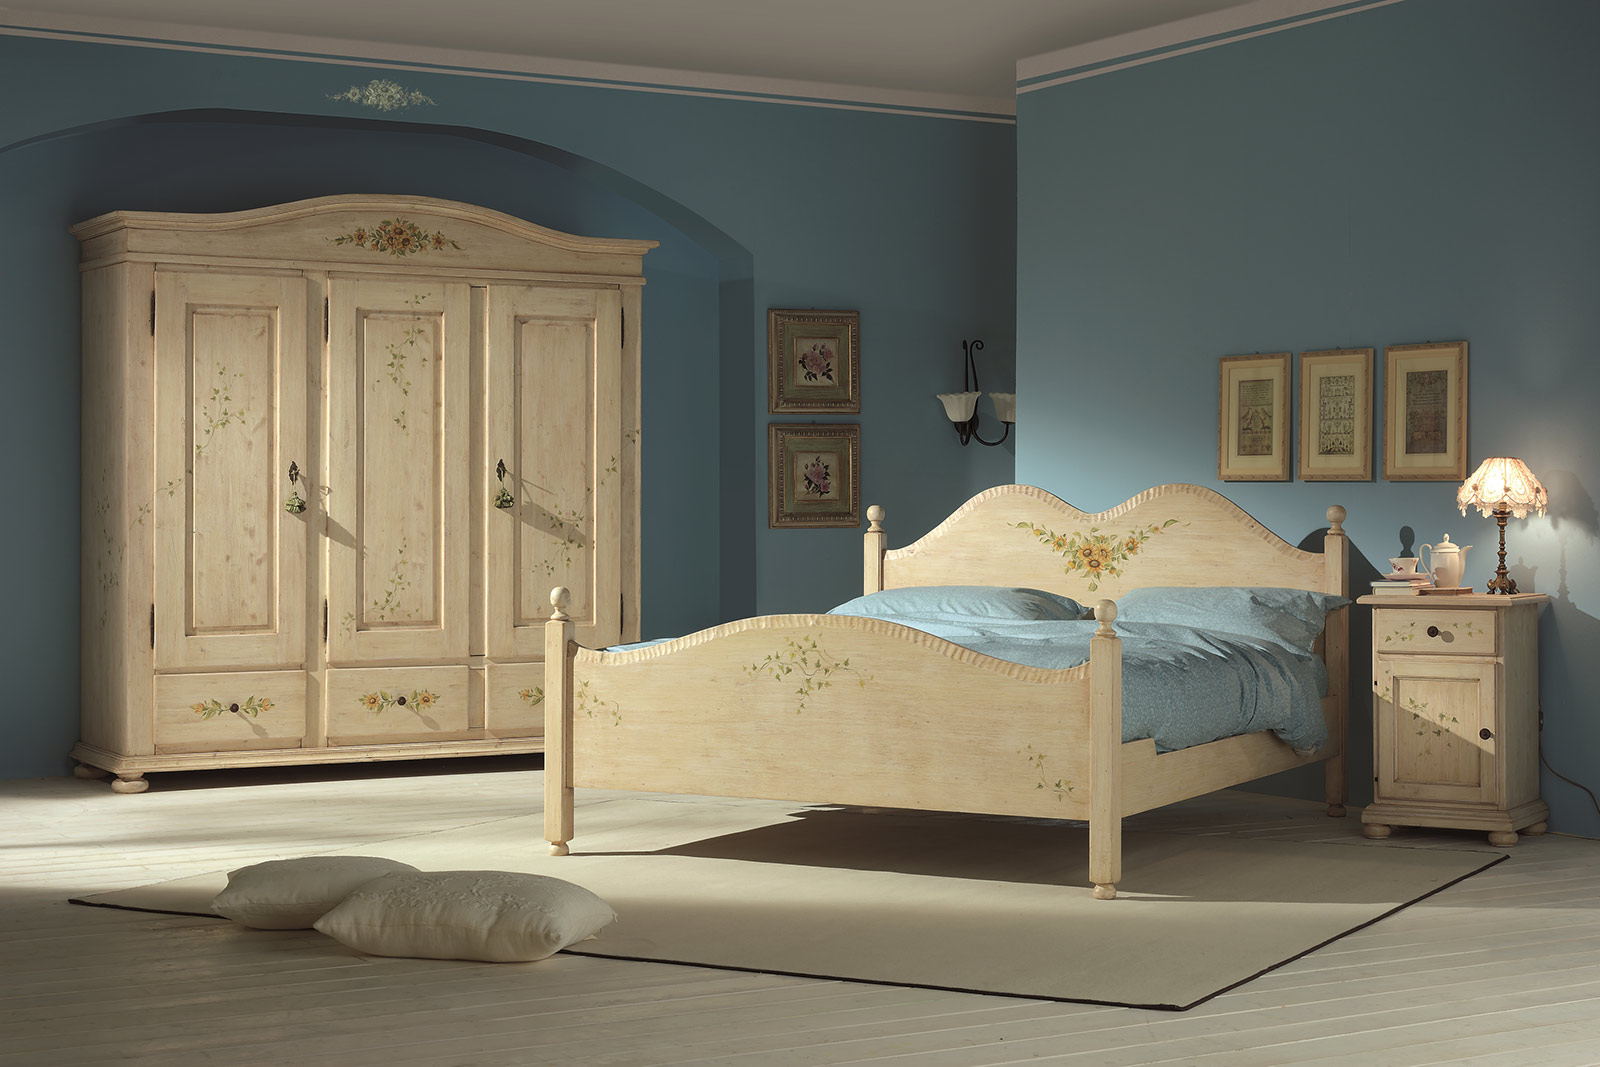 Letto matrimoniale country sv39 pineglen for Camere complete online